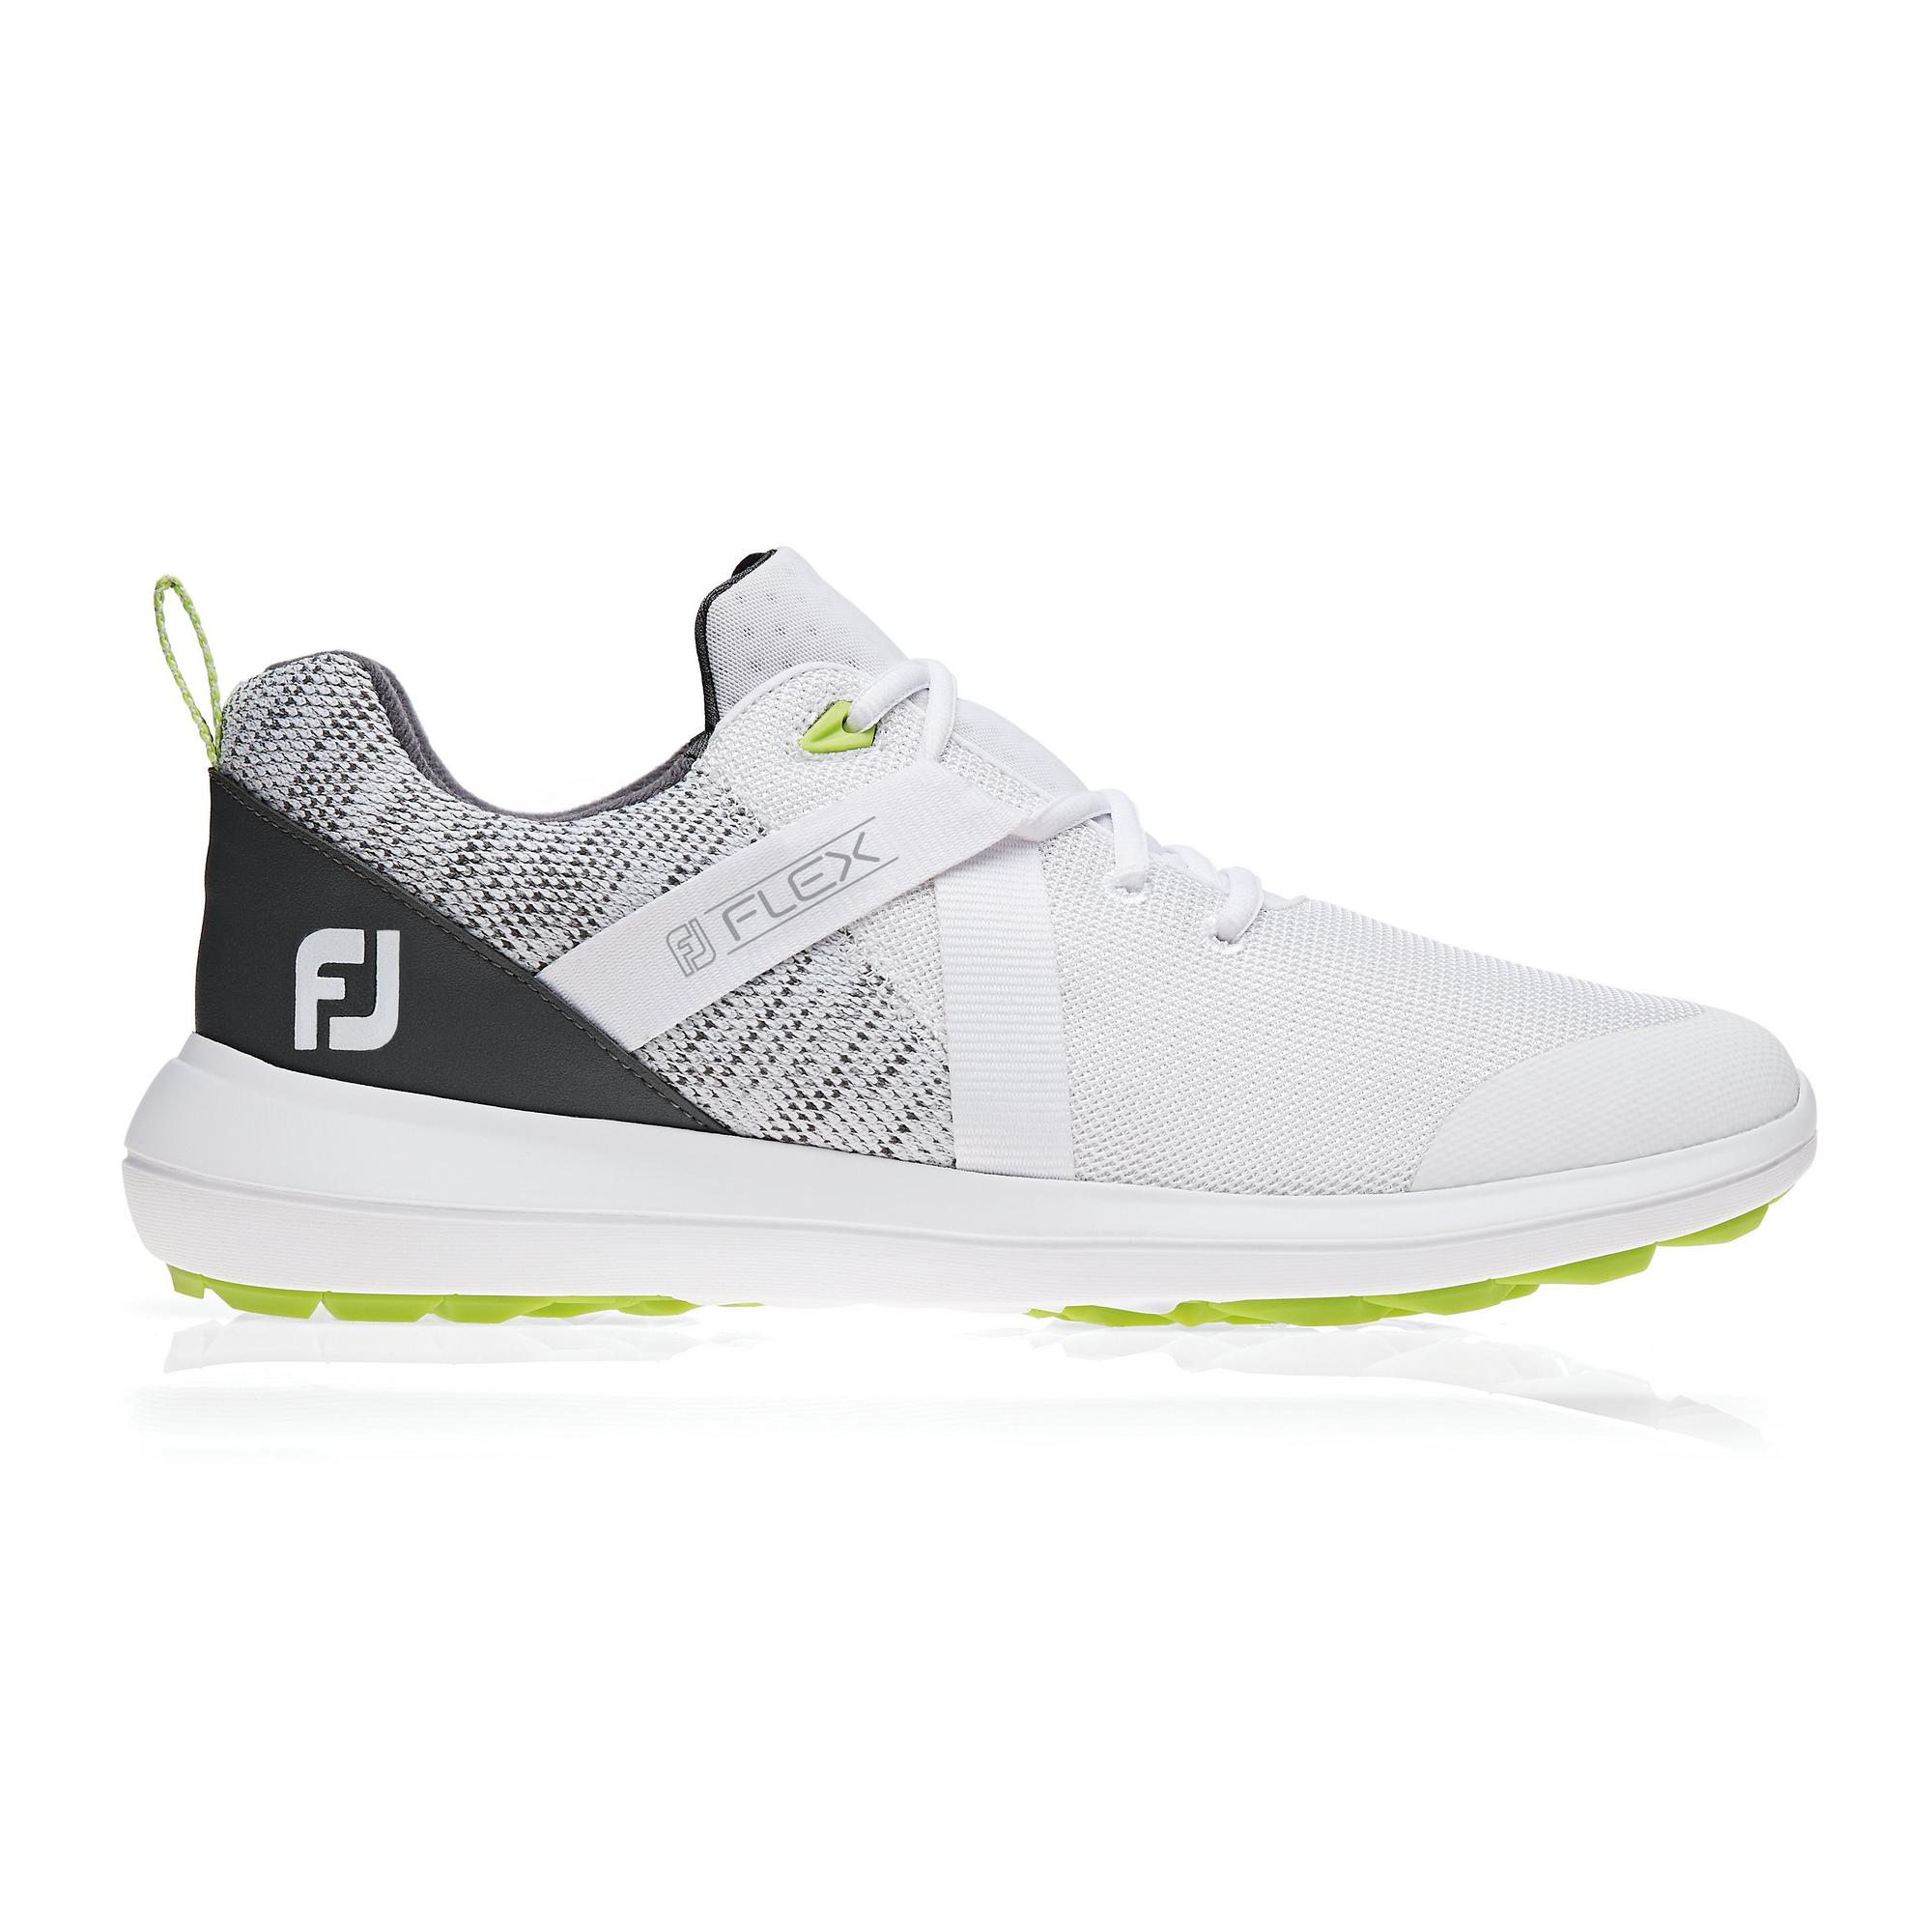 Men's Flex Spikeless Golf Shoe - White/Grey